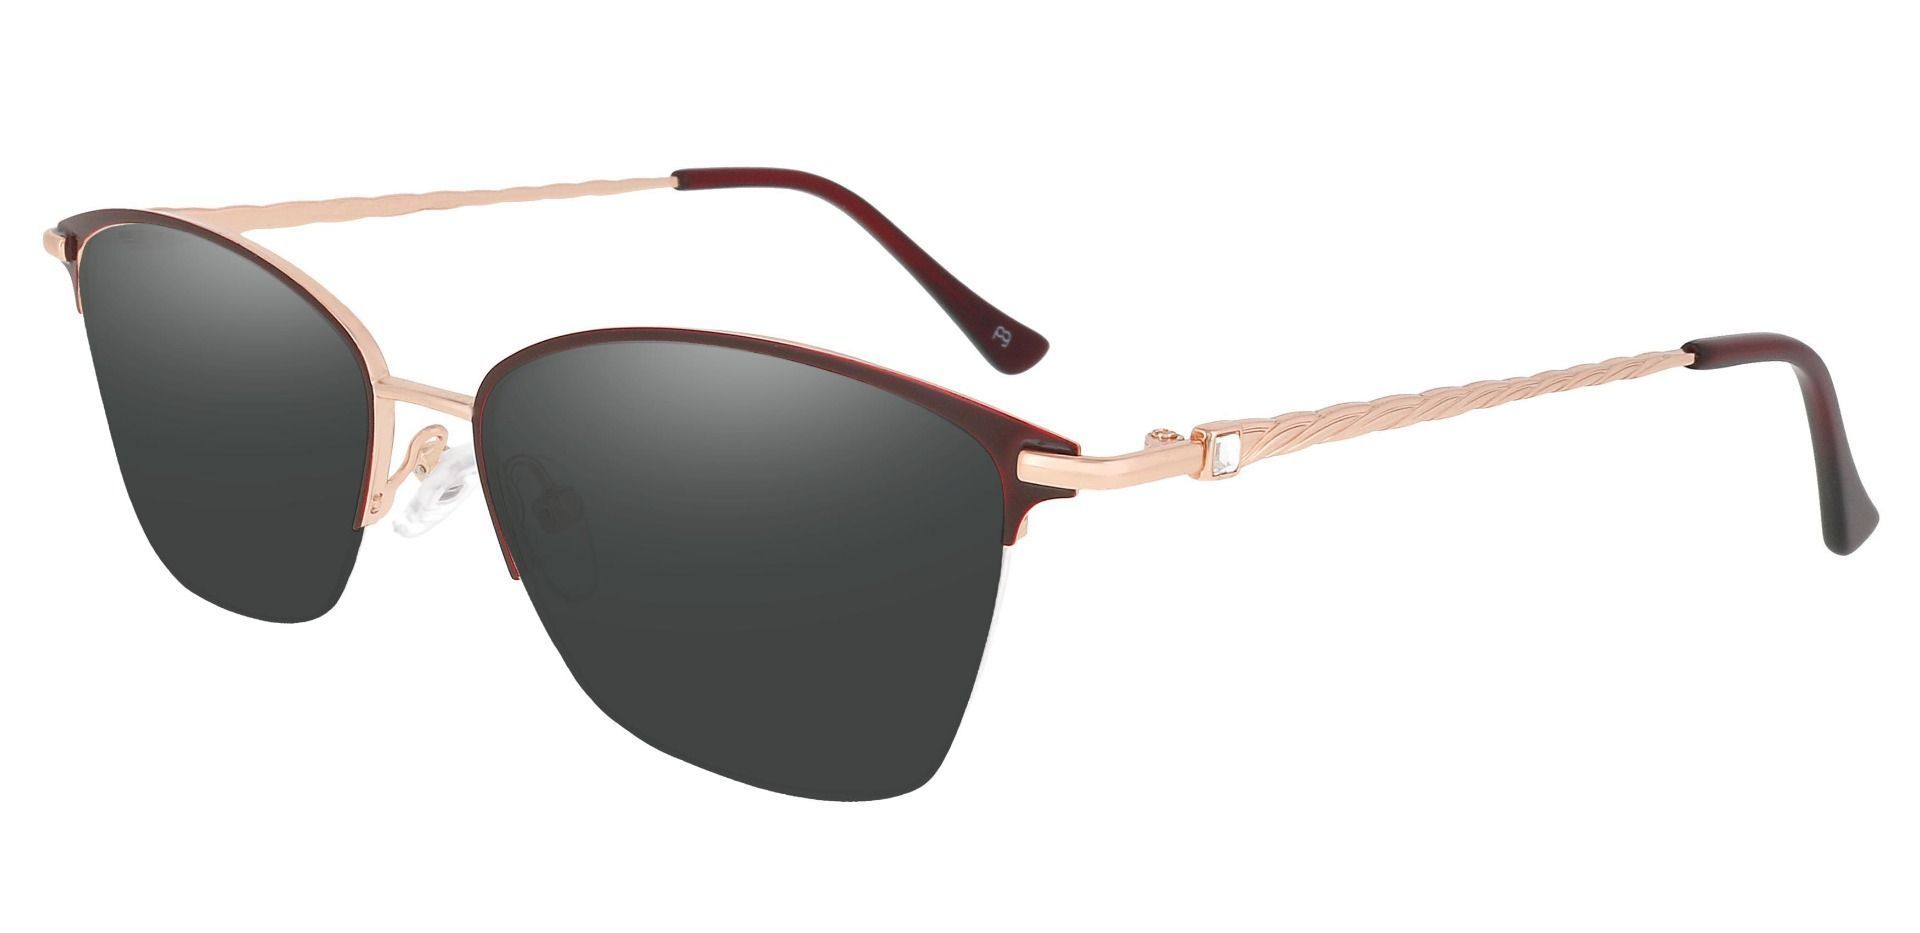 Marigold Rectangle Reading Sunglasses - Red Frame With Gray Lenses